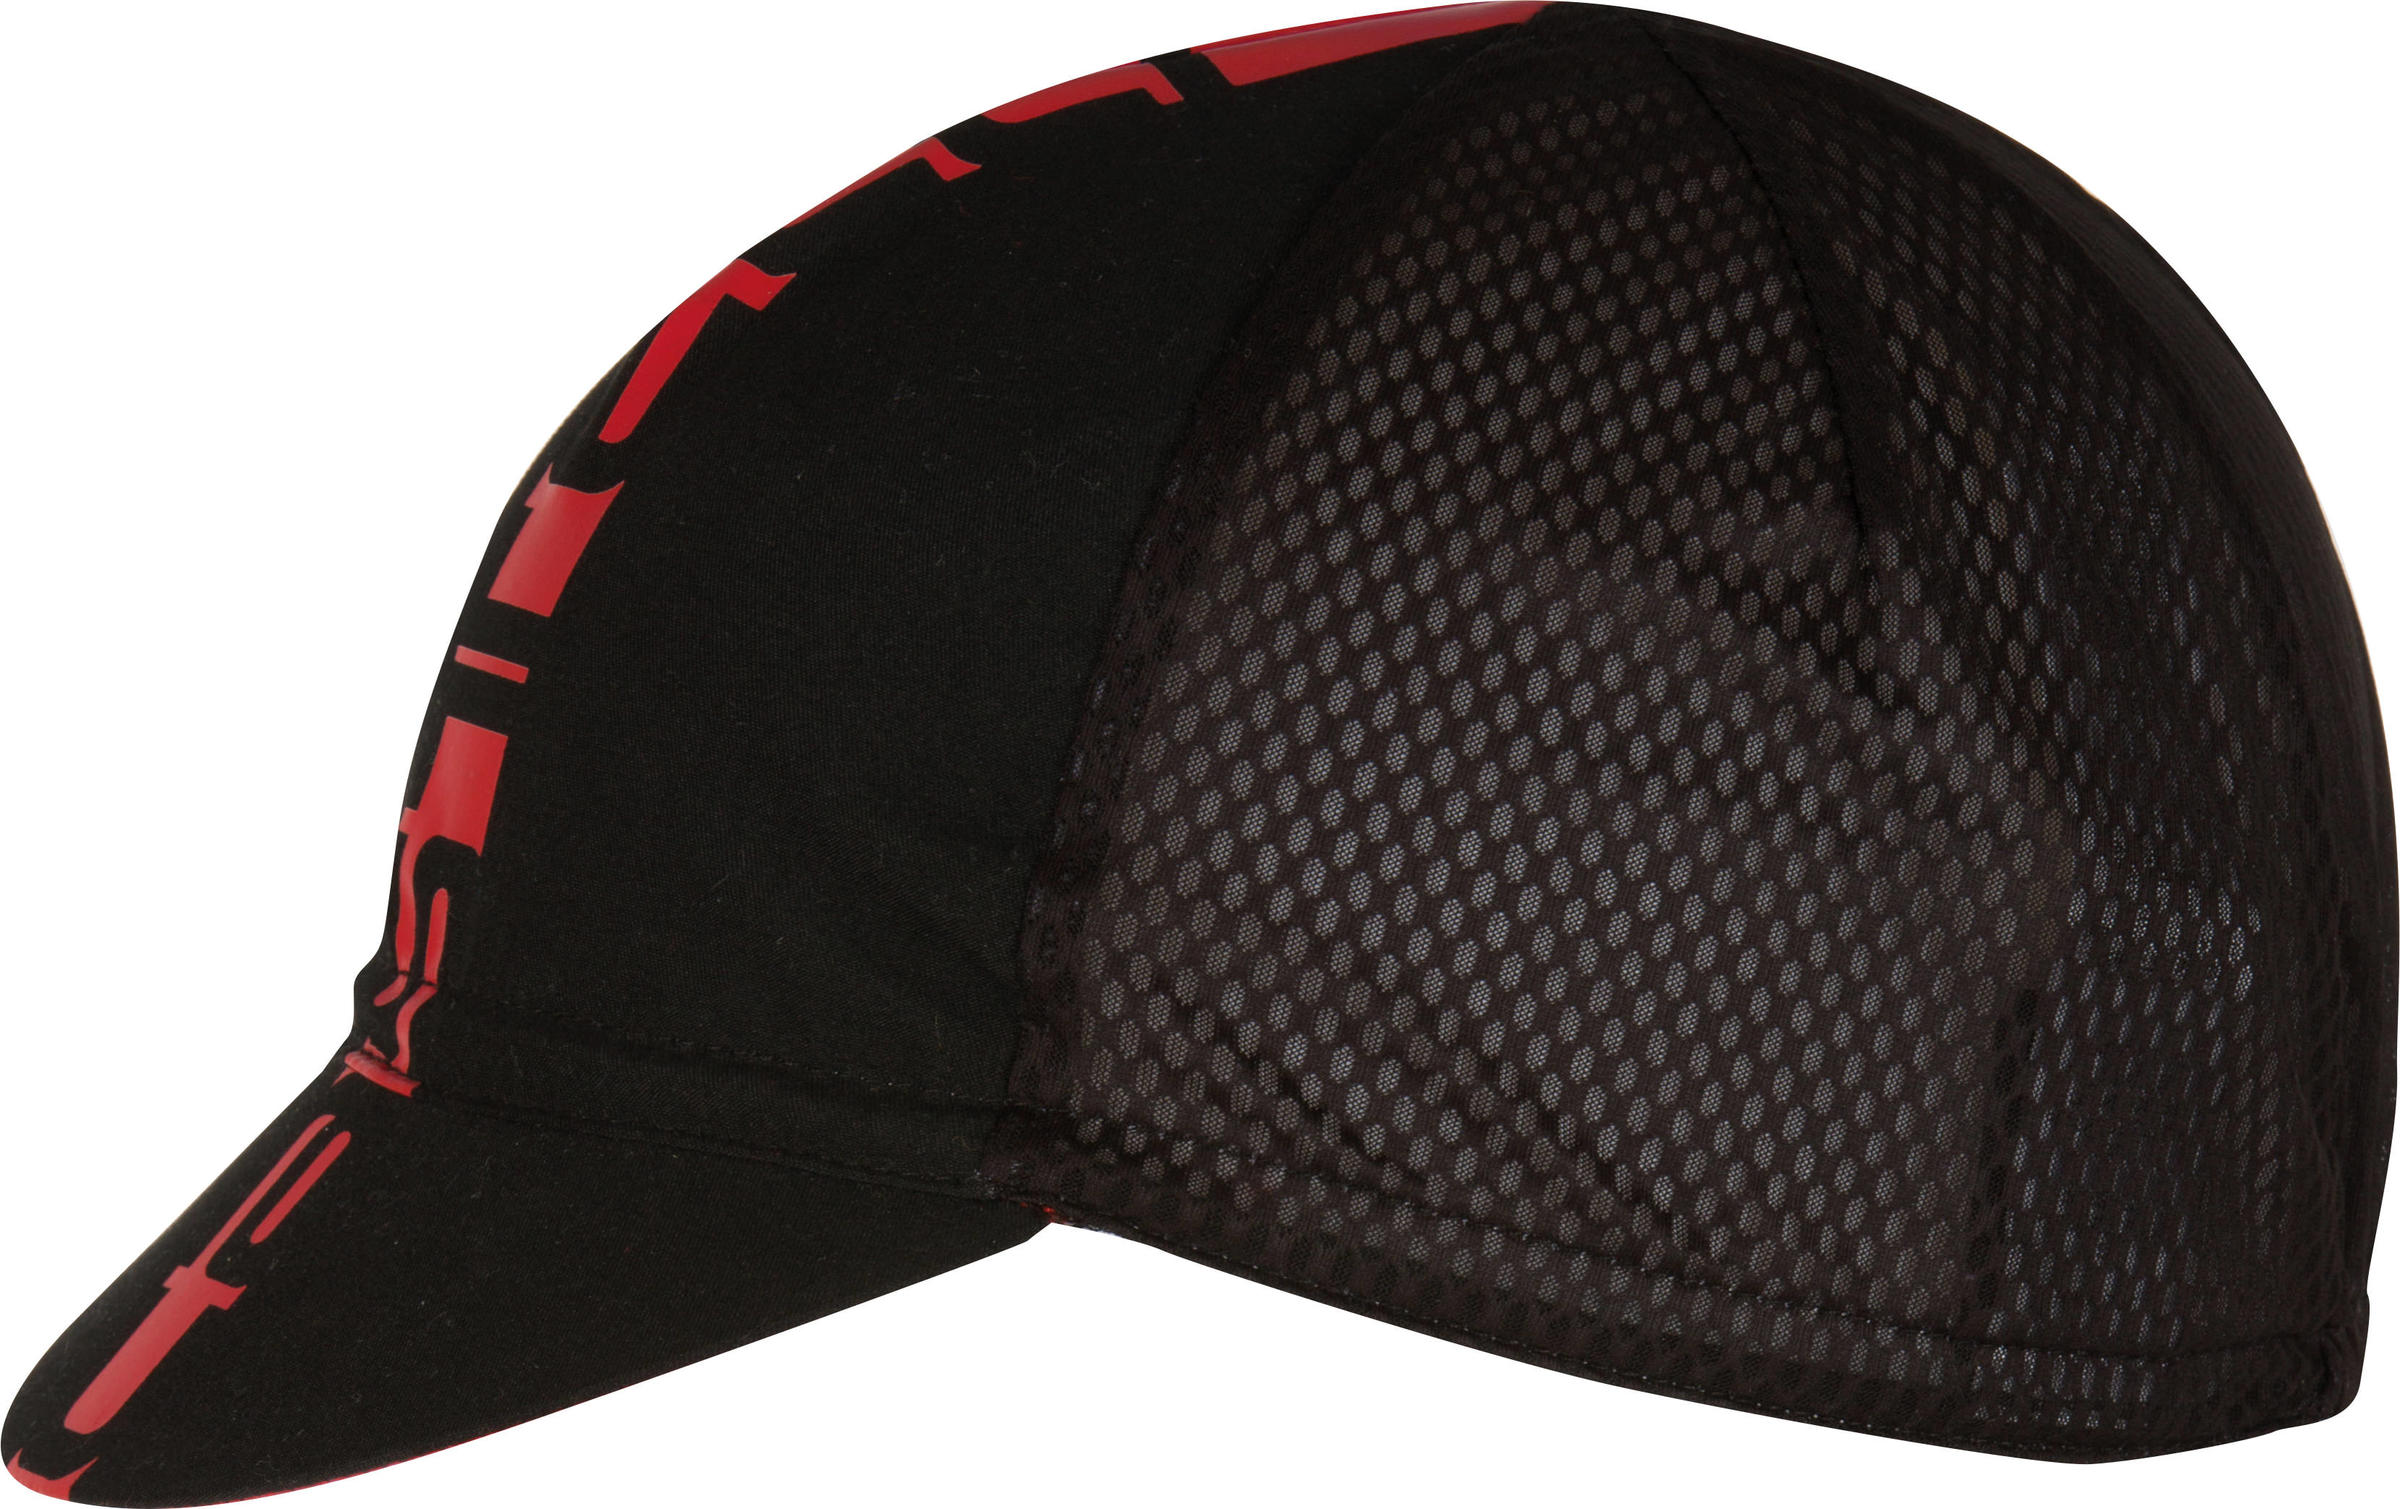 4b635918824bc7 Castelli Inferno Cycling Cap - Roy's Cyclery - Upland, California ...